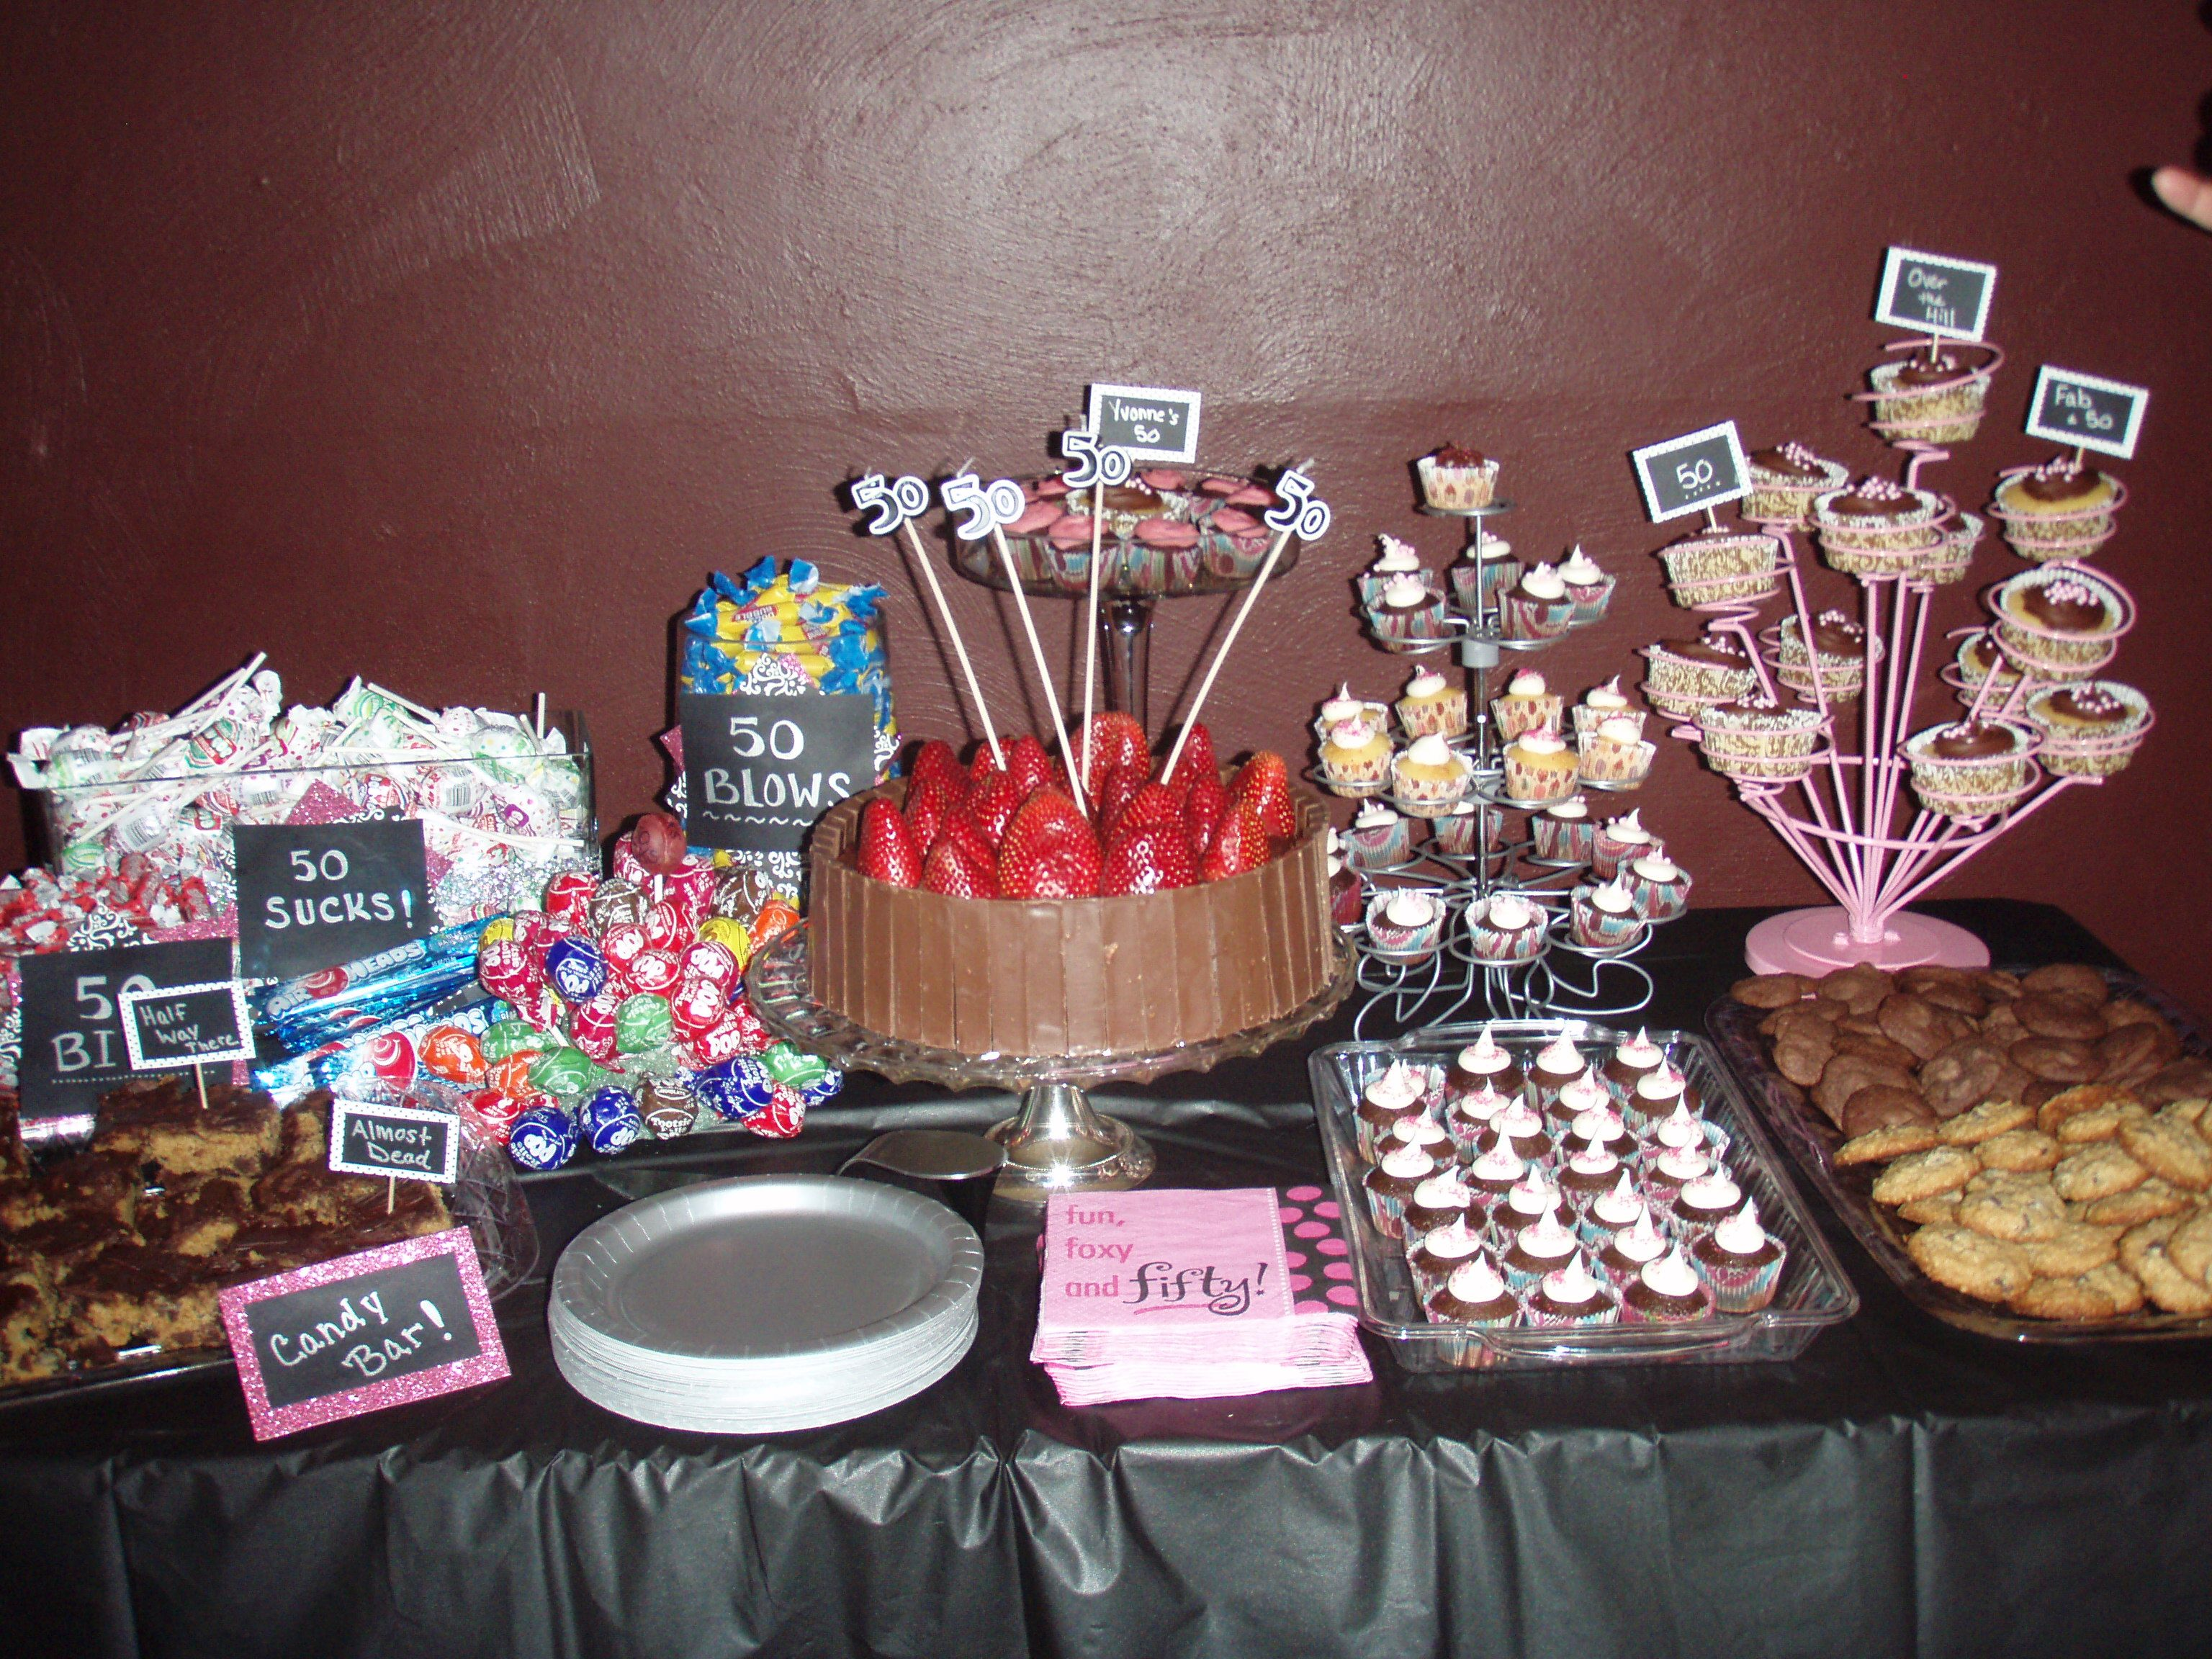 Awesome Dessert Table Idea!! Summer Arranged This For Her